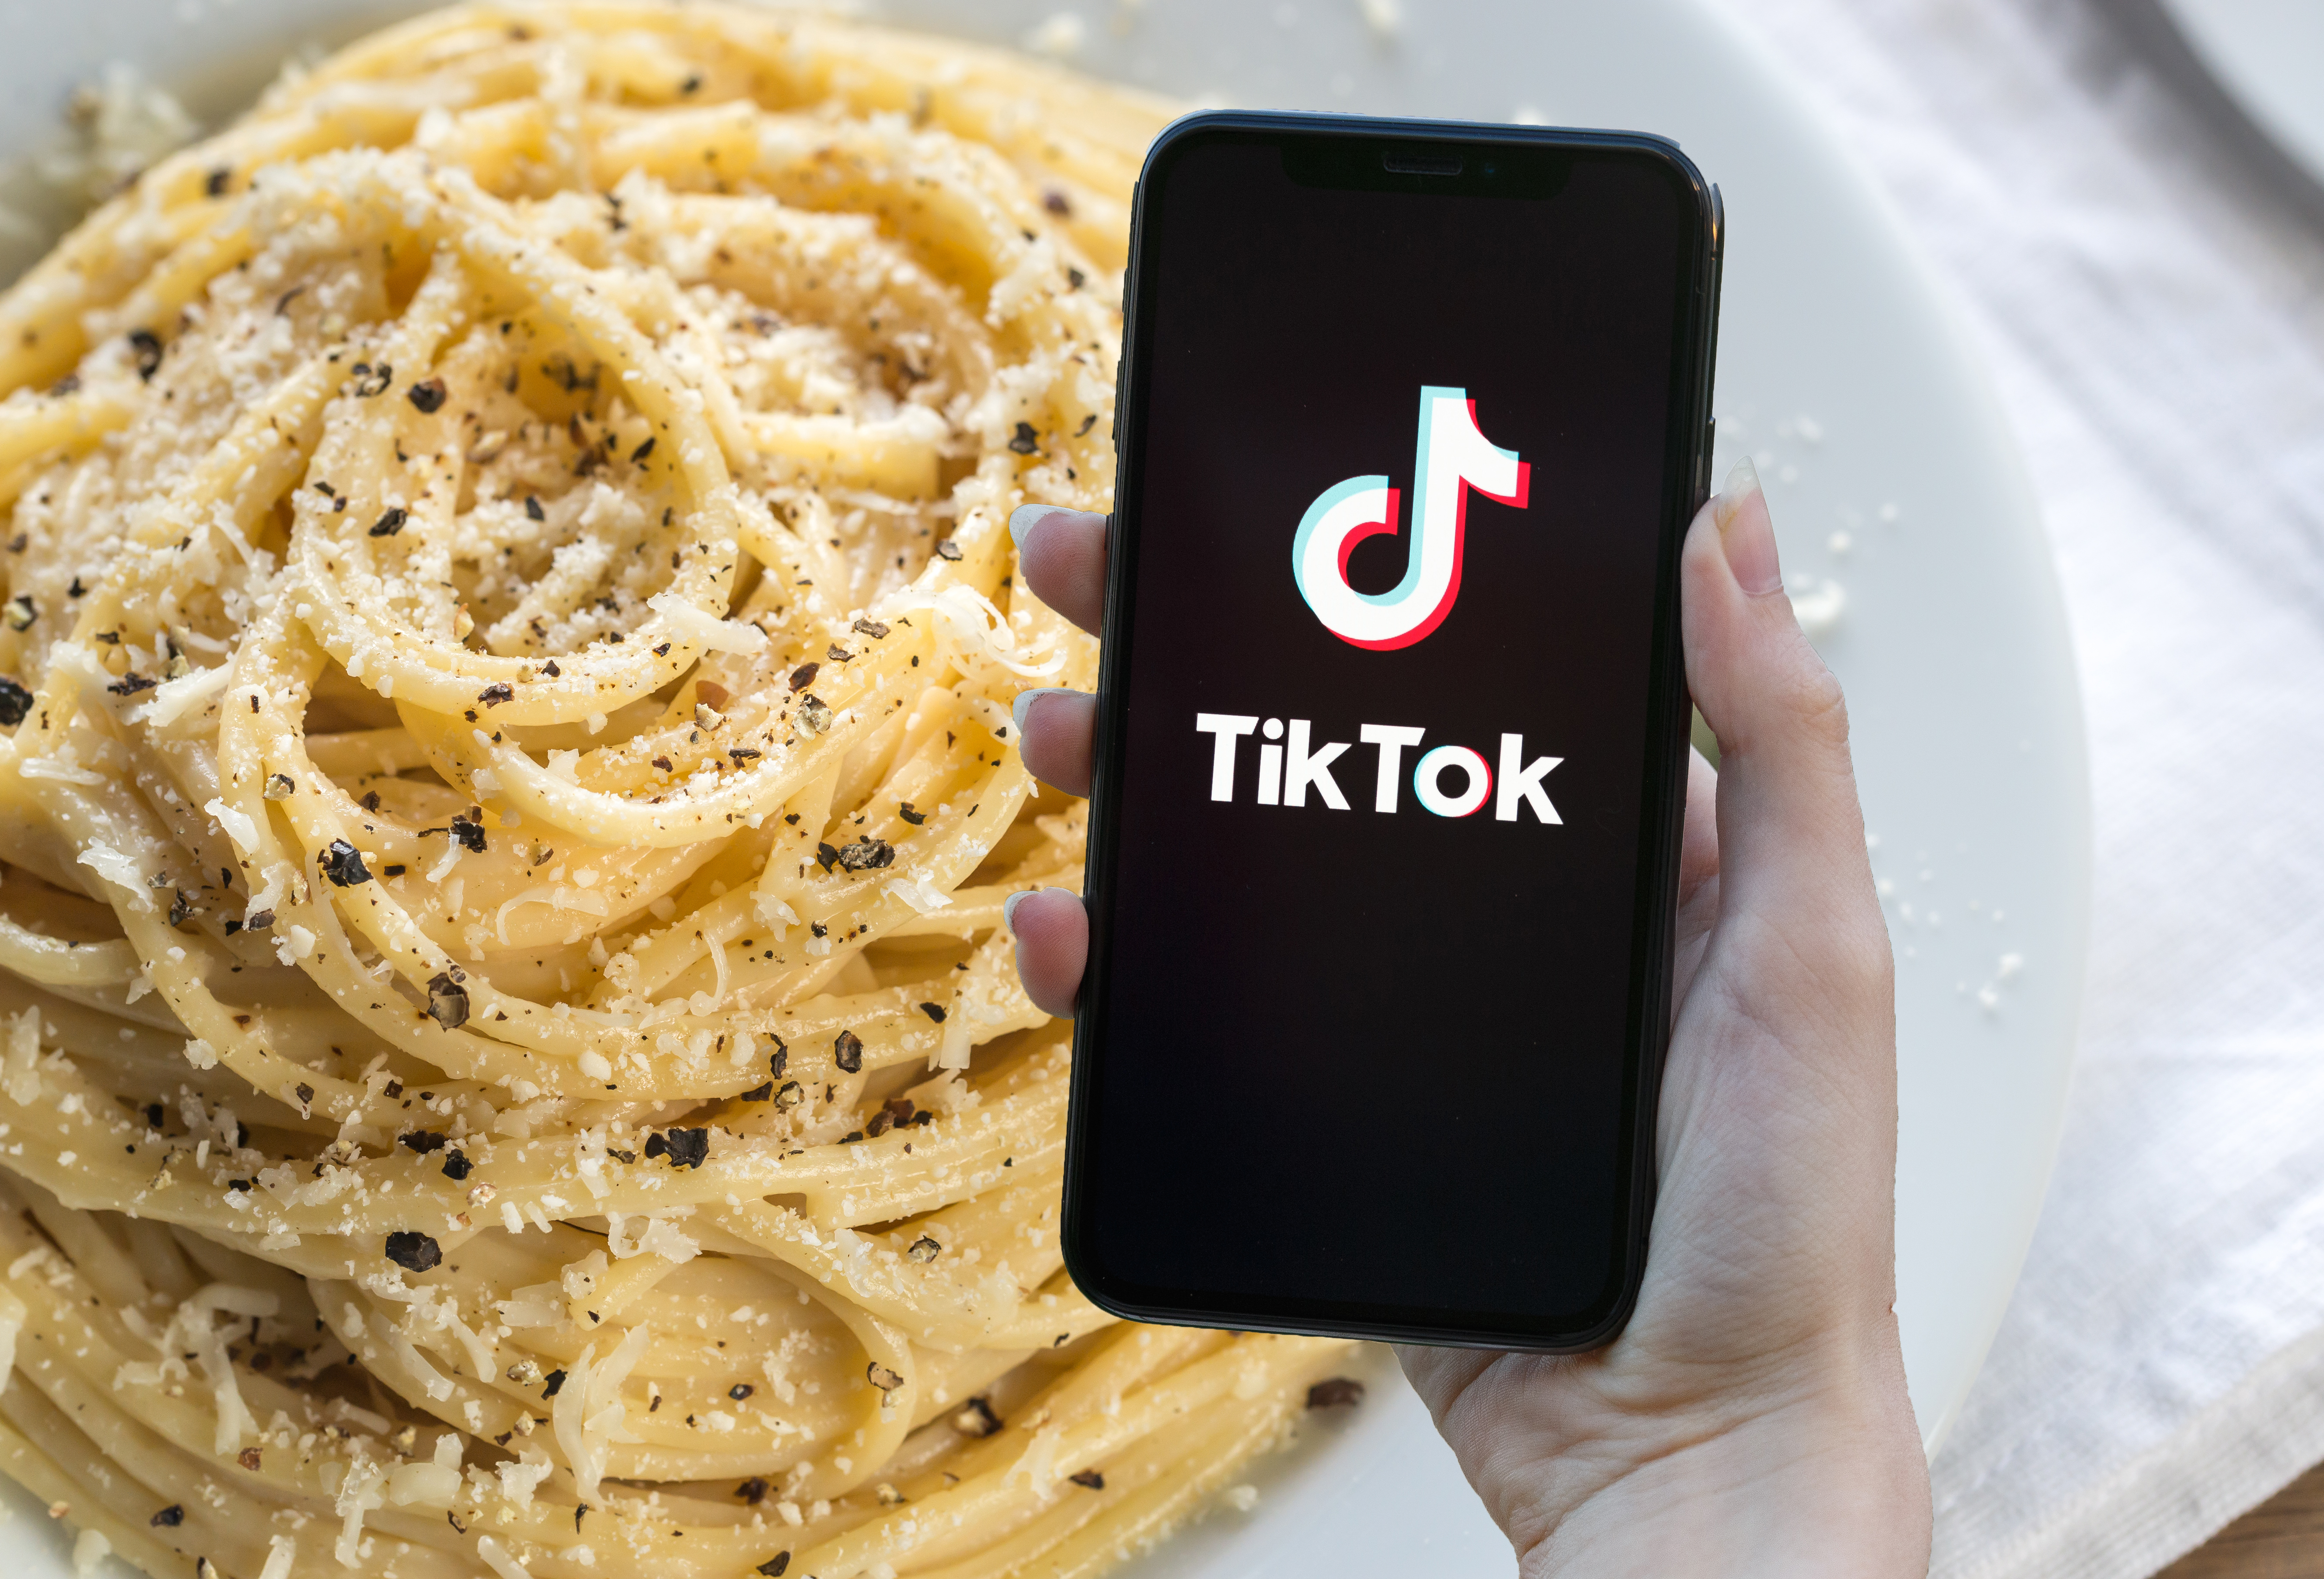 In the foregroud, a hand holds a phone displaying the Tik Tok app; the background is a plate of cacio e pepe.